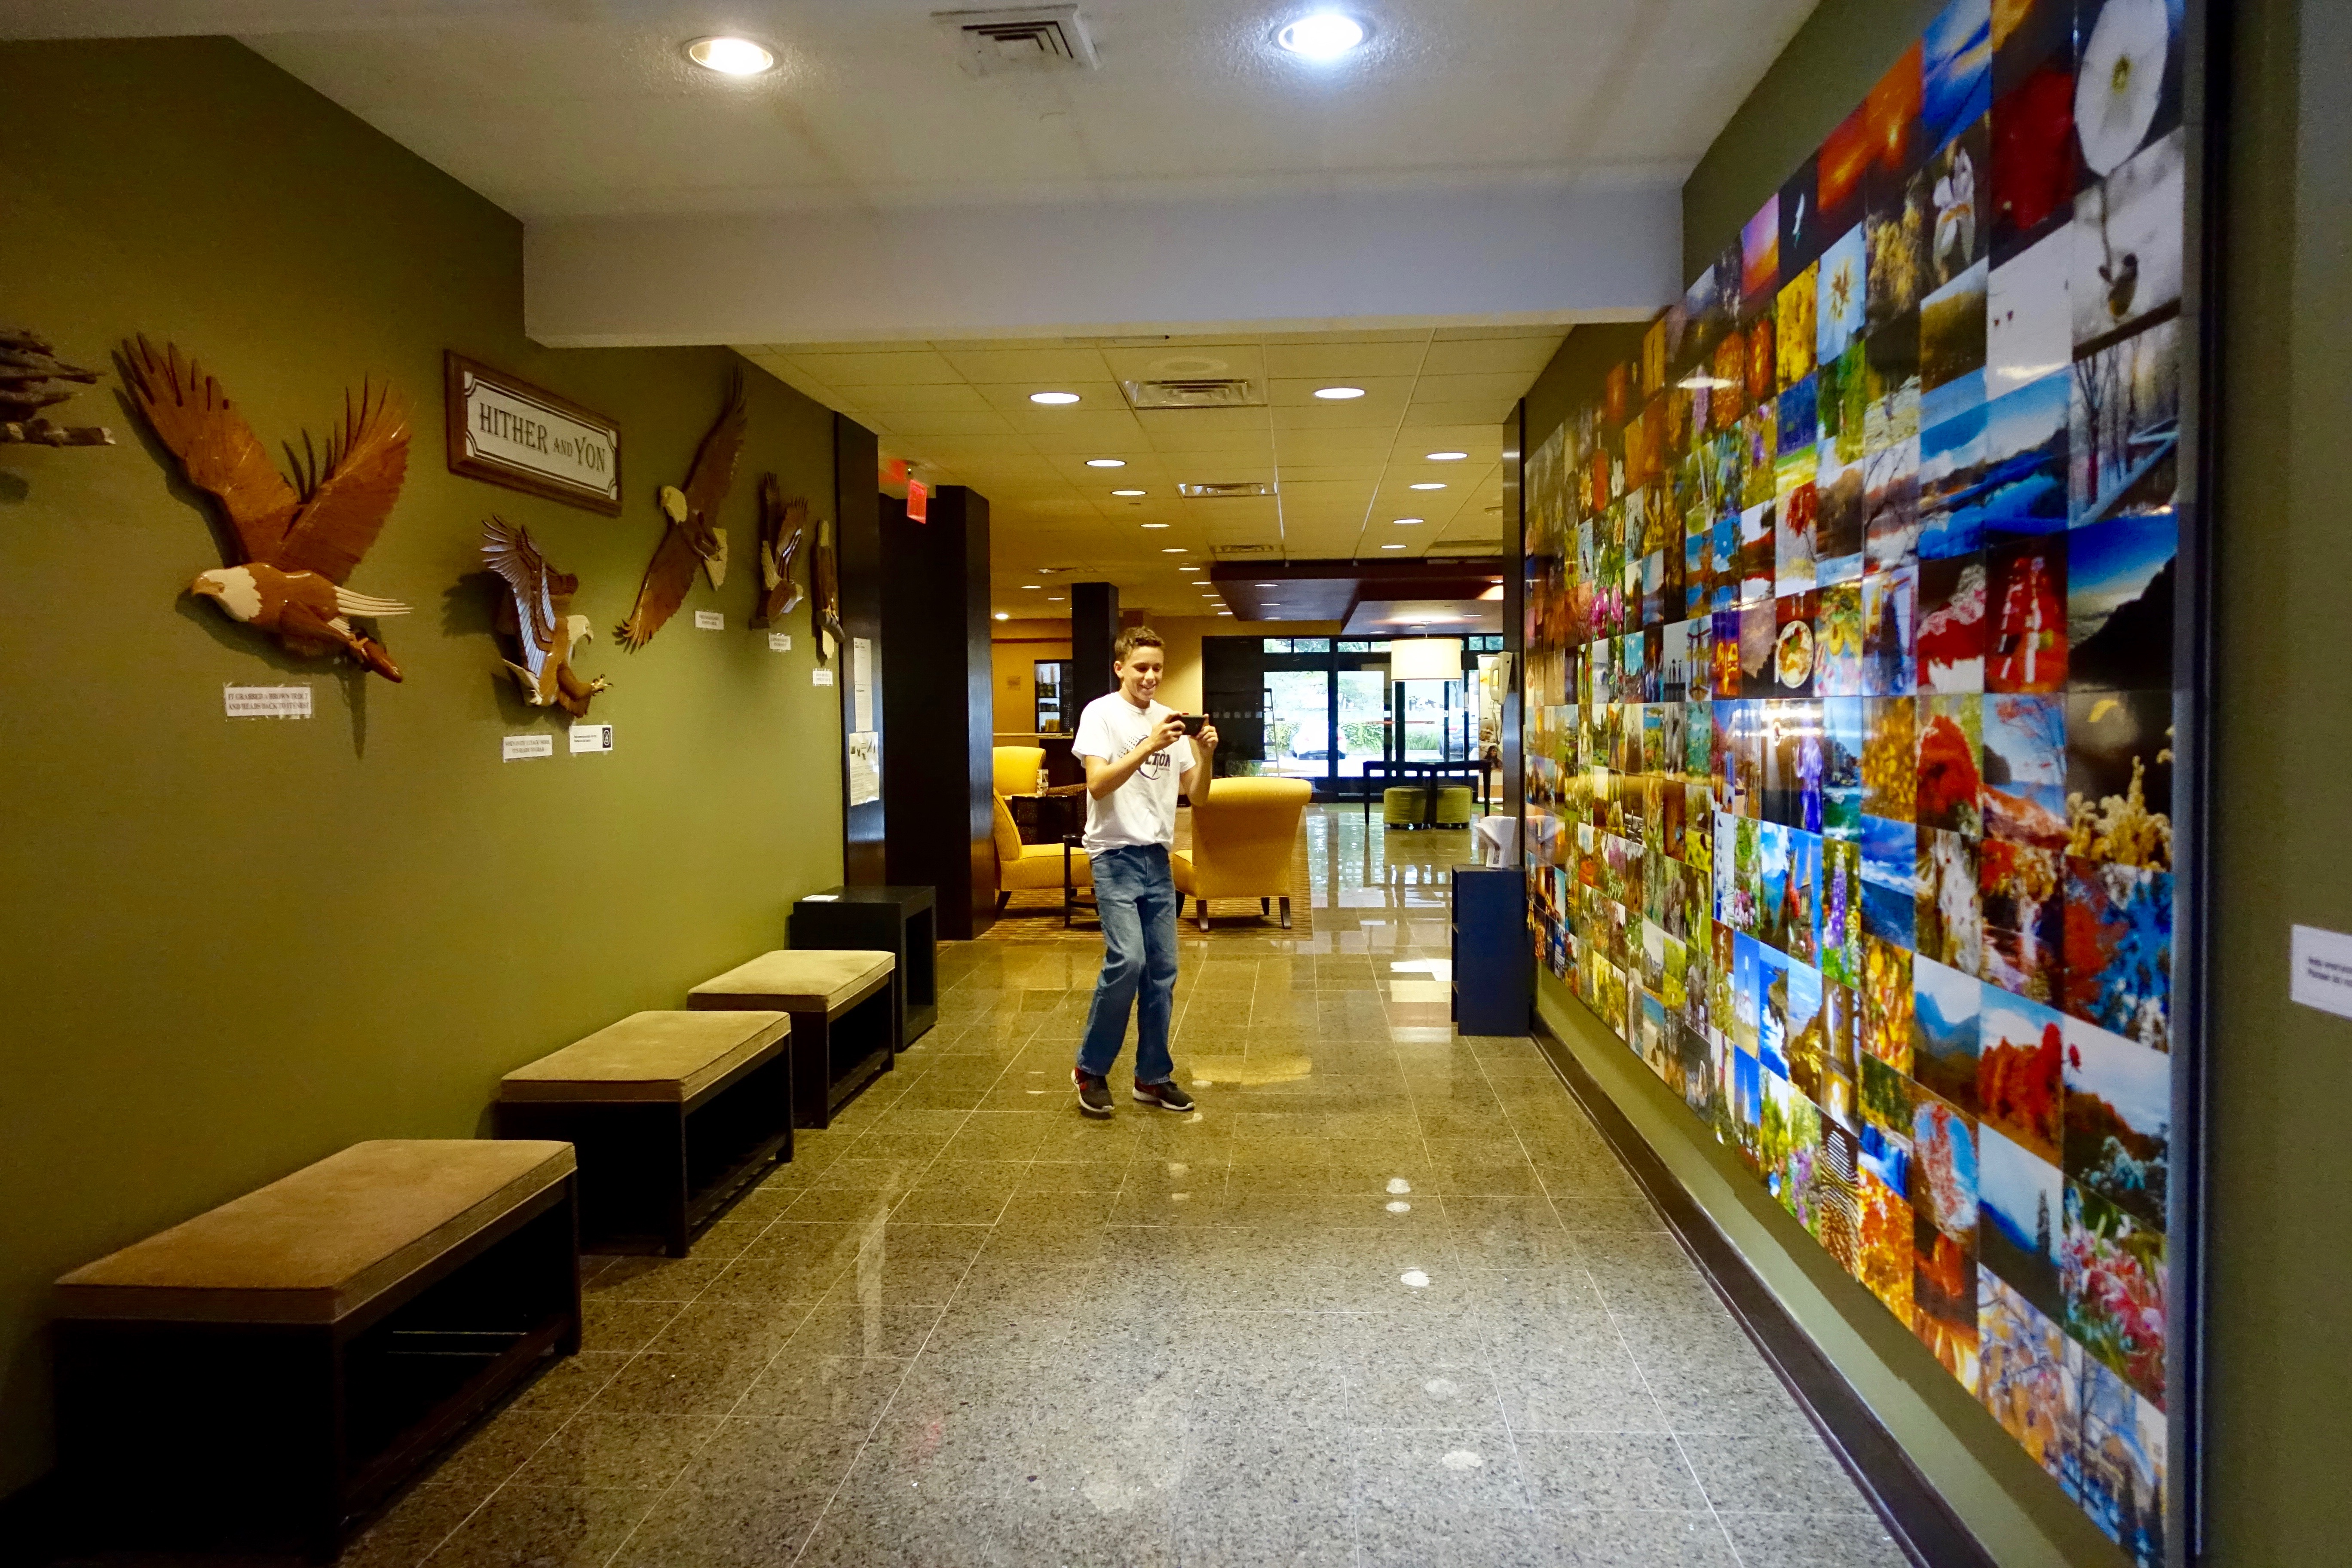 artprize-8-mural-installed-in-back-lobby-of-holiday-inn